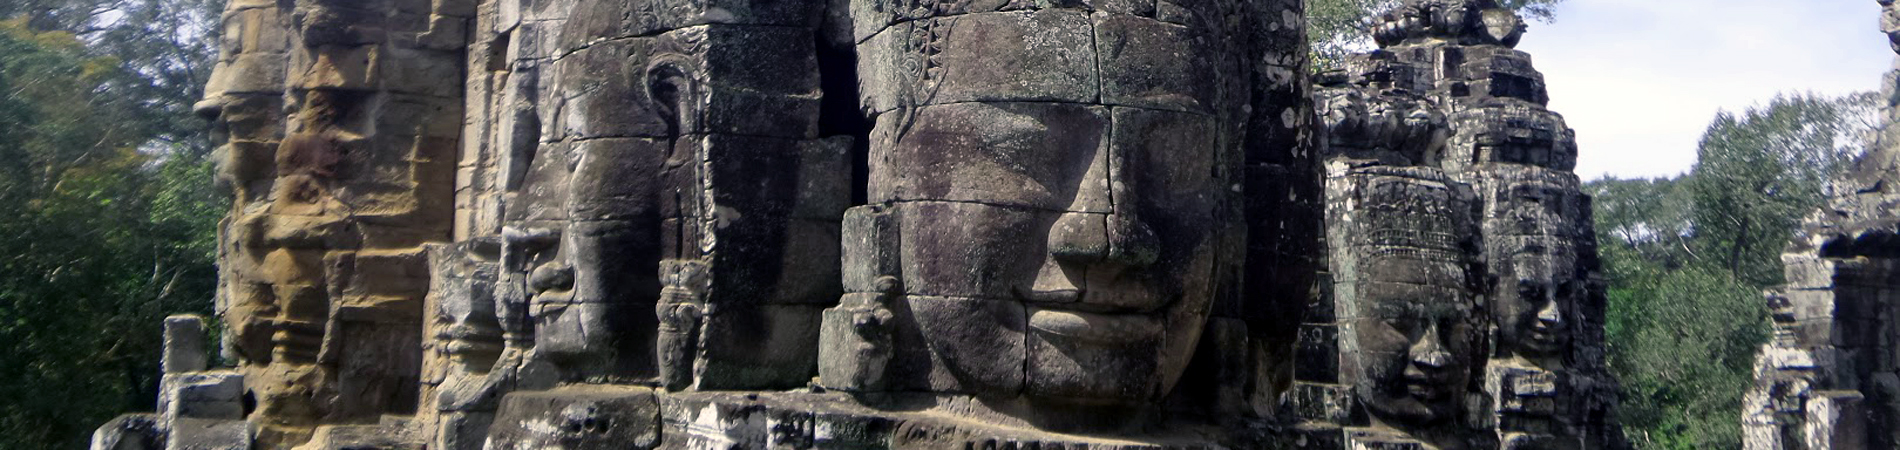 Marco cam angkor wat faces header